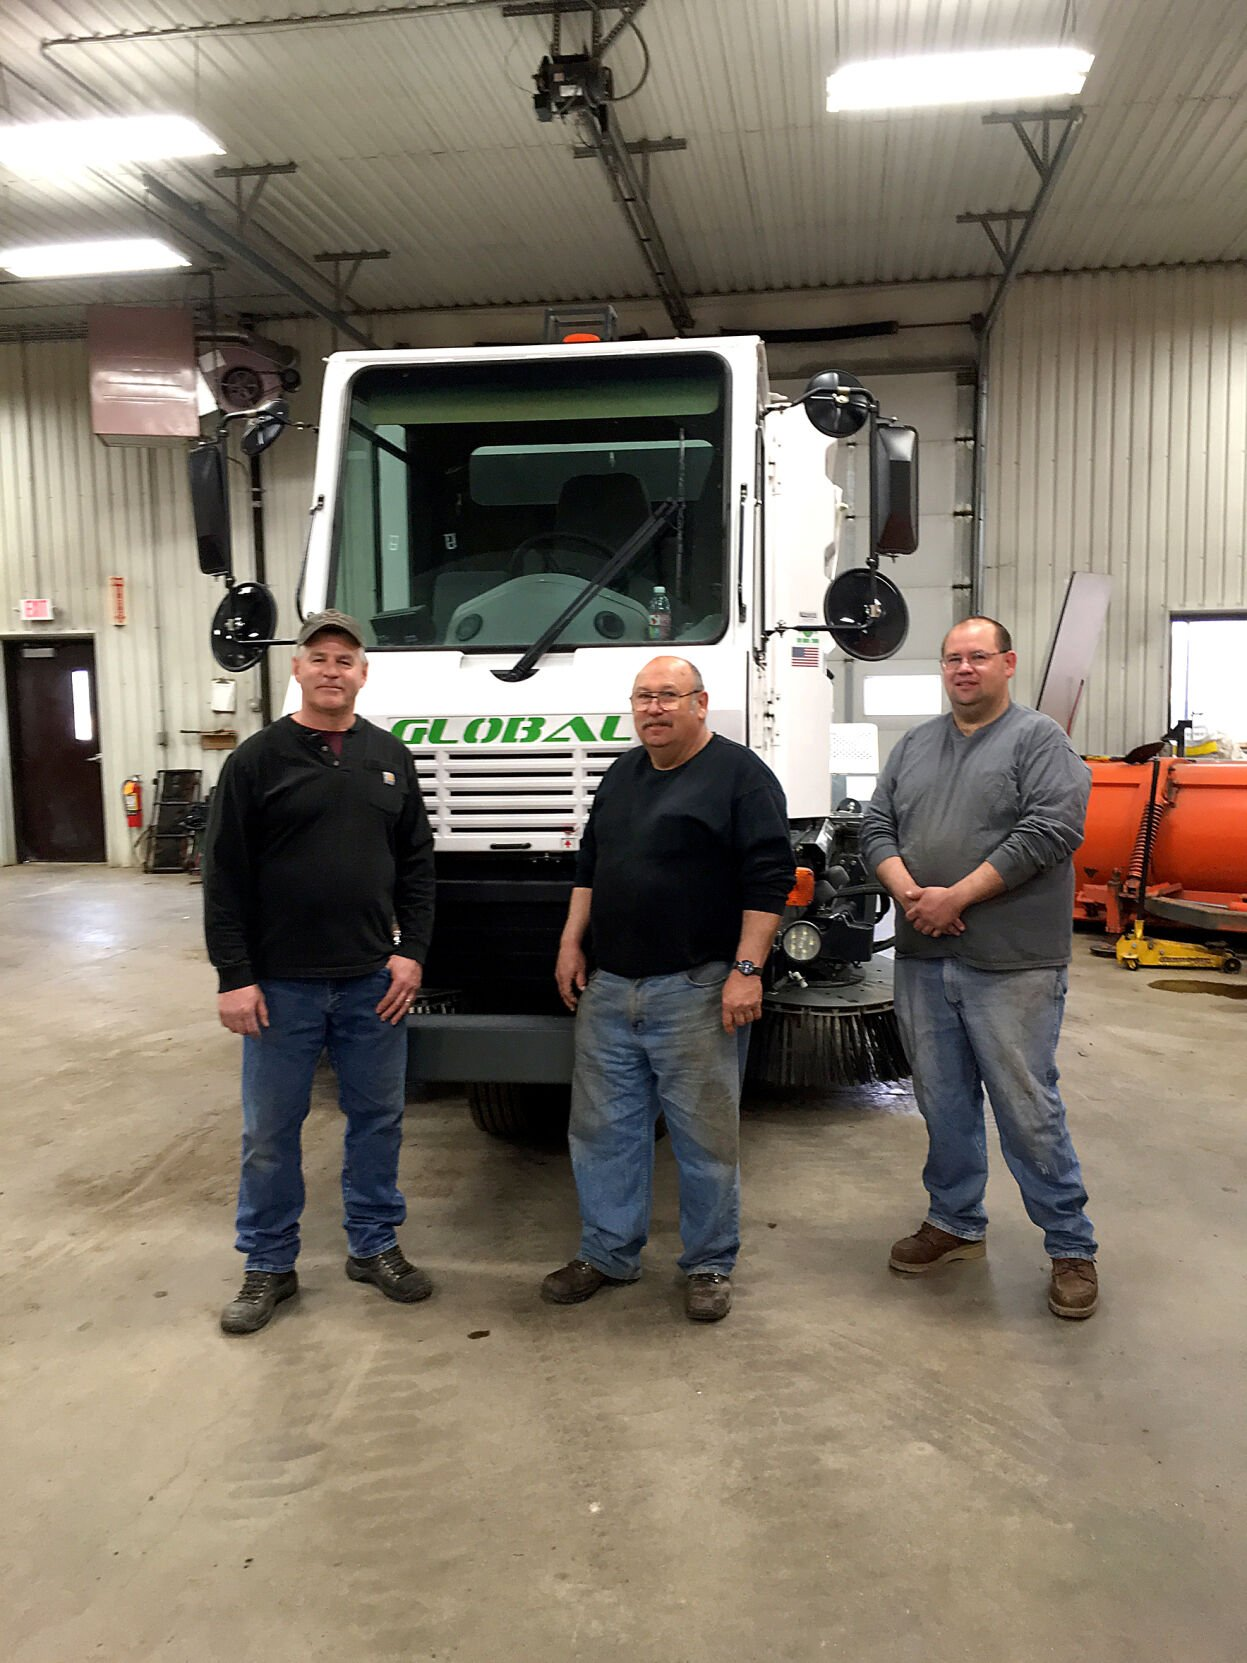 The Aitkin Street Department crew in 2017 – Greg Handt, Bob Nicko  and Lon Nicko – with the new street sweeper.